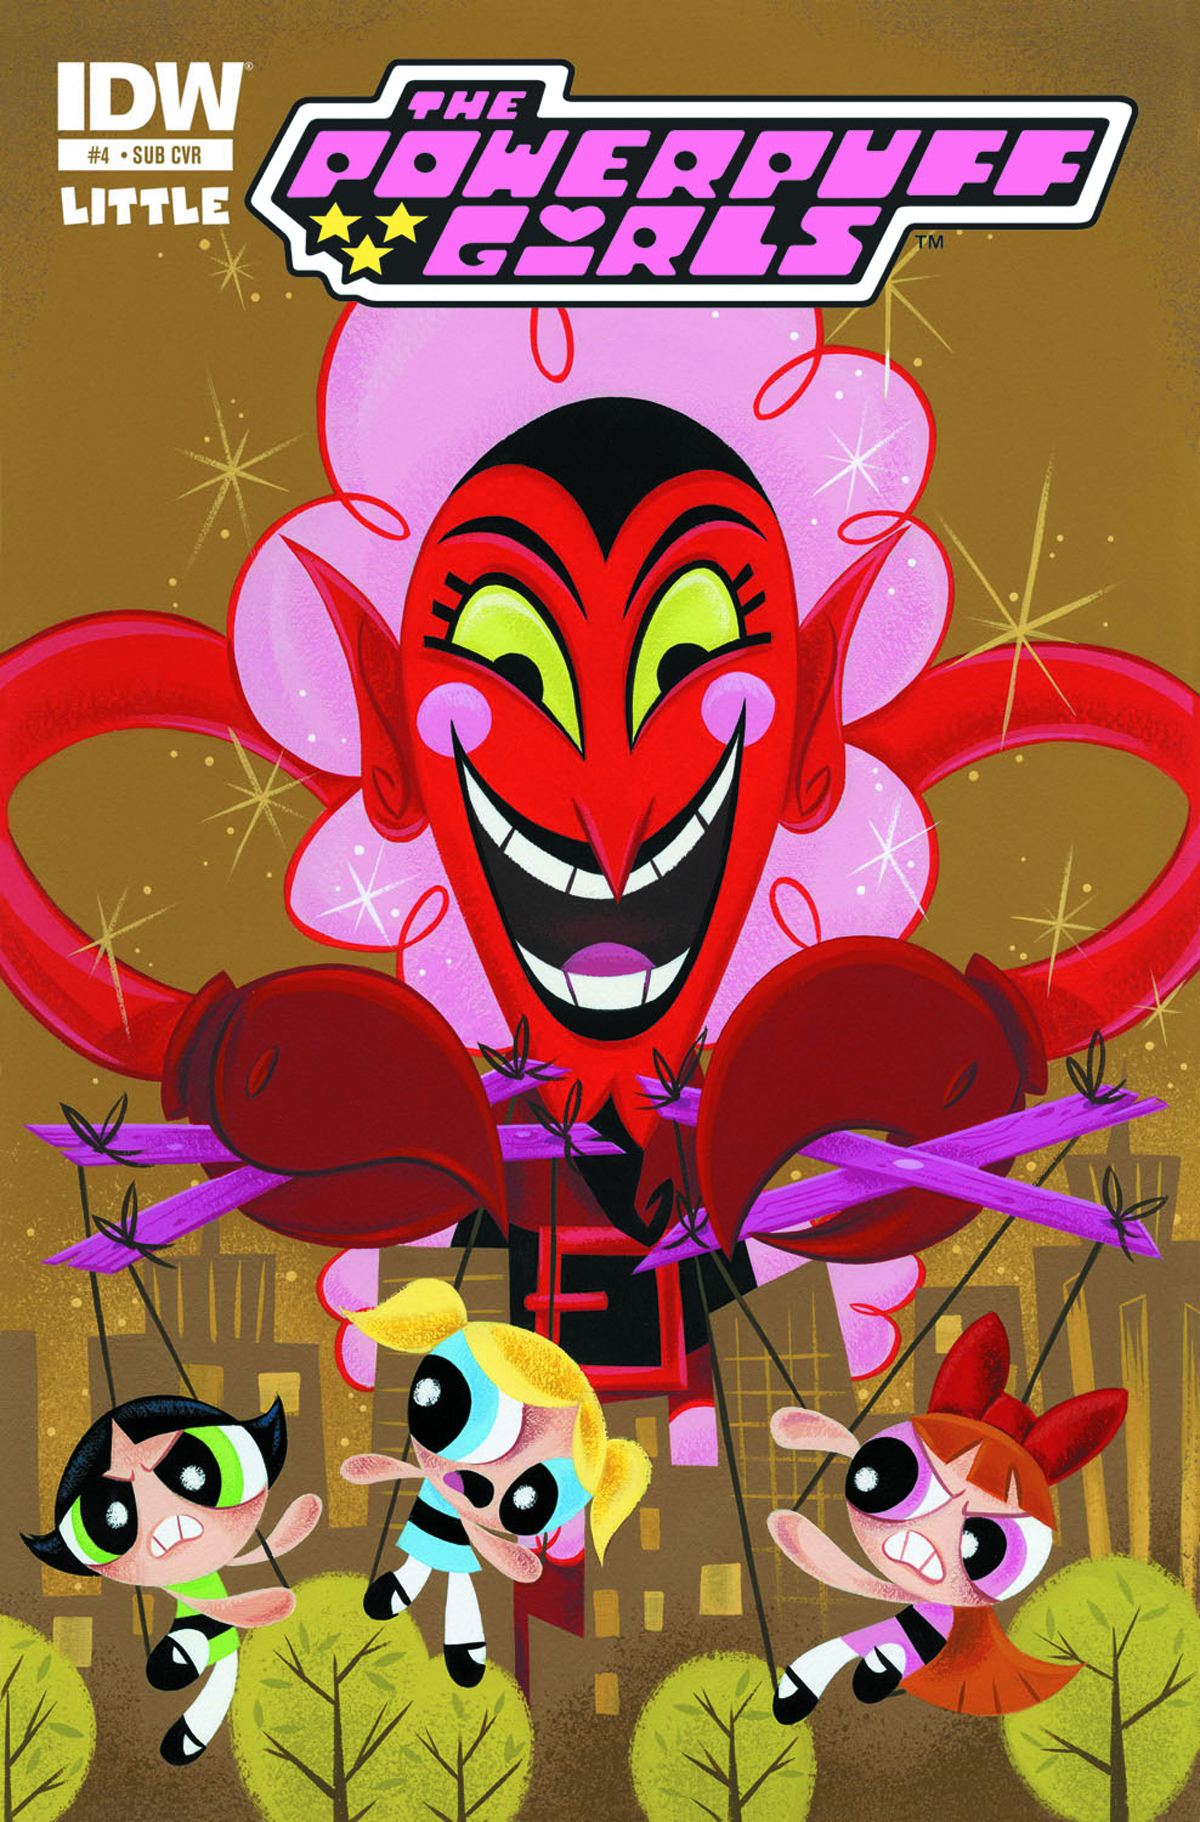 POWERPUFF GIRLS #4